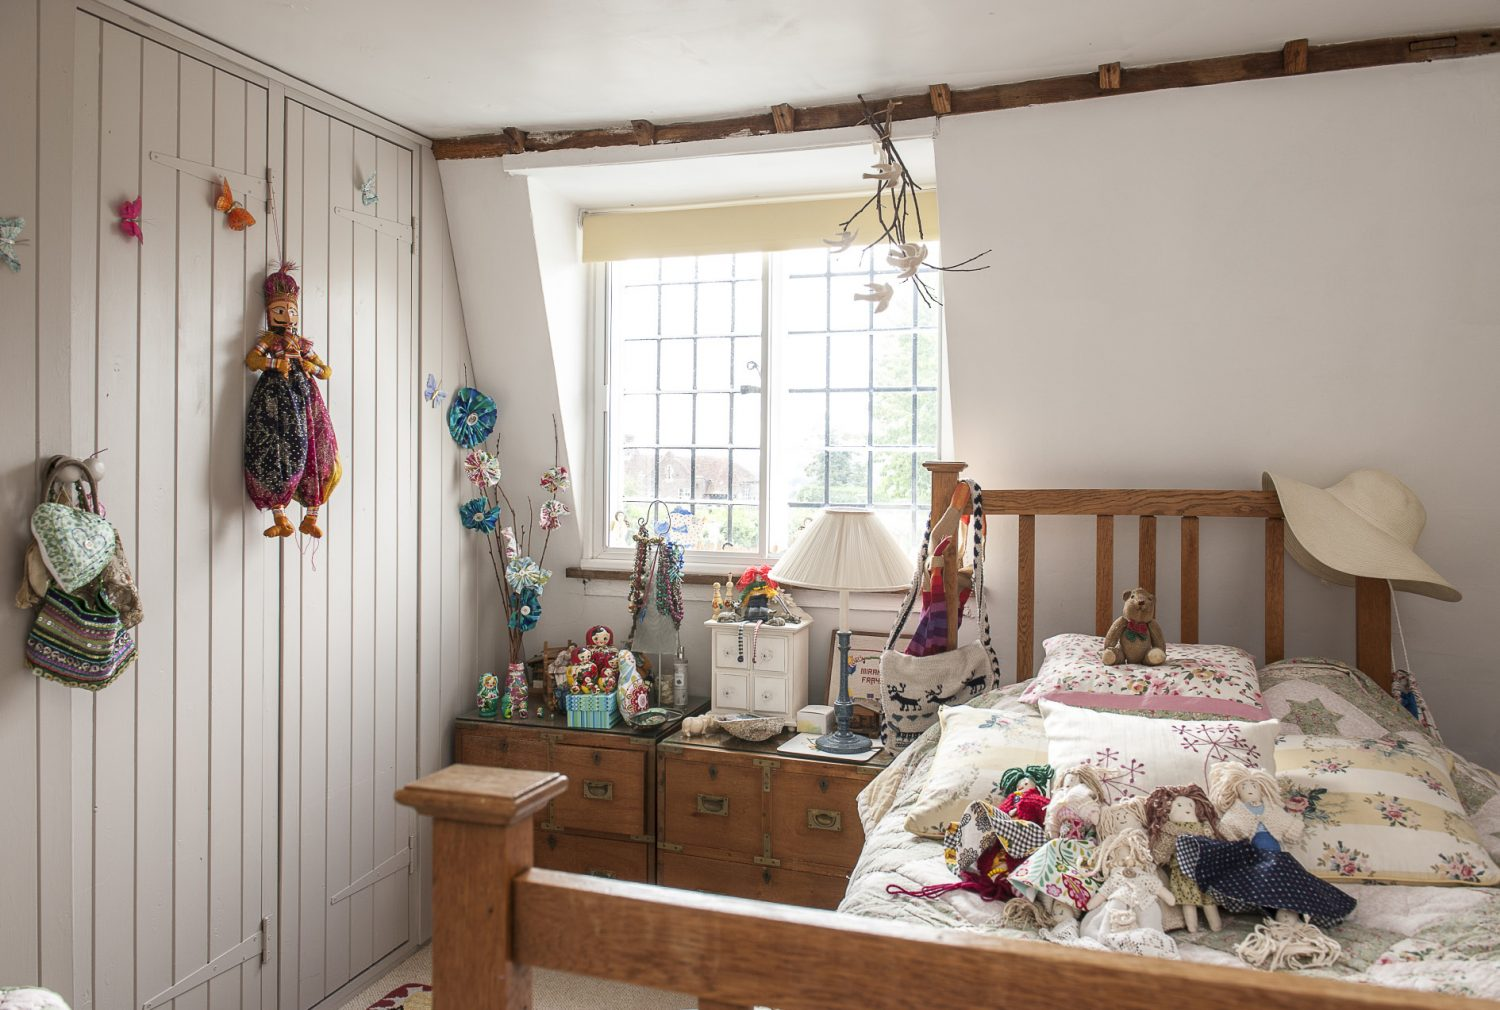 Suzanne and Tim's daughter's room is a sweet, light-filled space